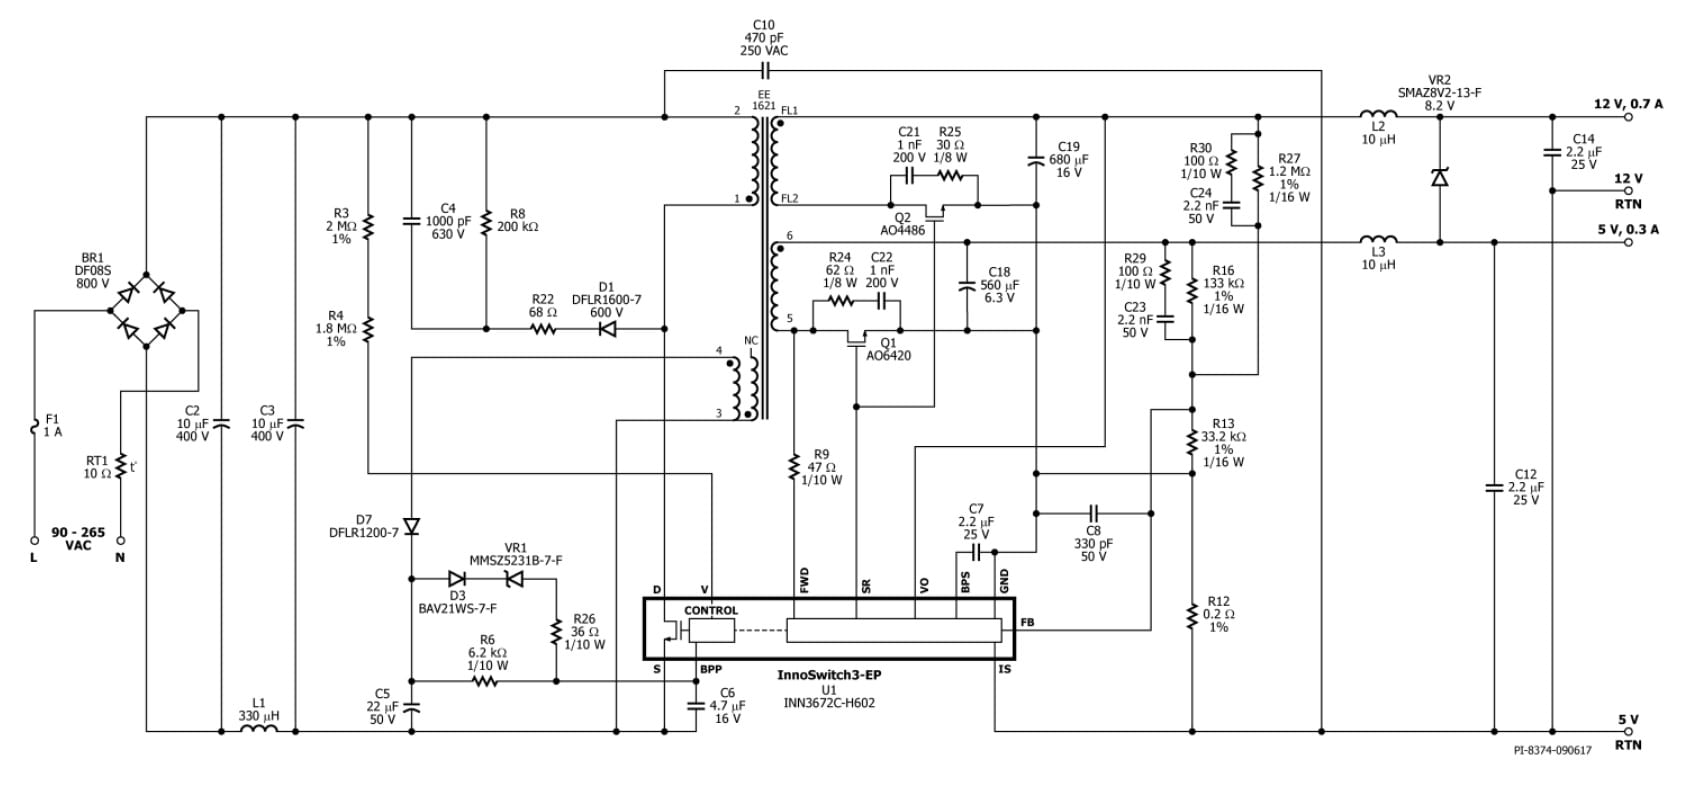 Reference Design For A 10w Dual Output 5v 12v Ac Dc Flyback Regulated Power Supply With Overvoltage Protection Schematic Rdr 611 Click On To Enlarge